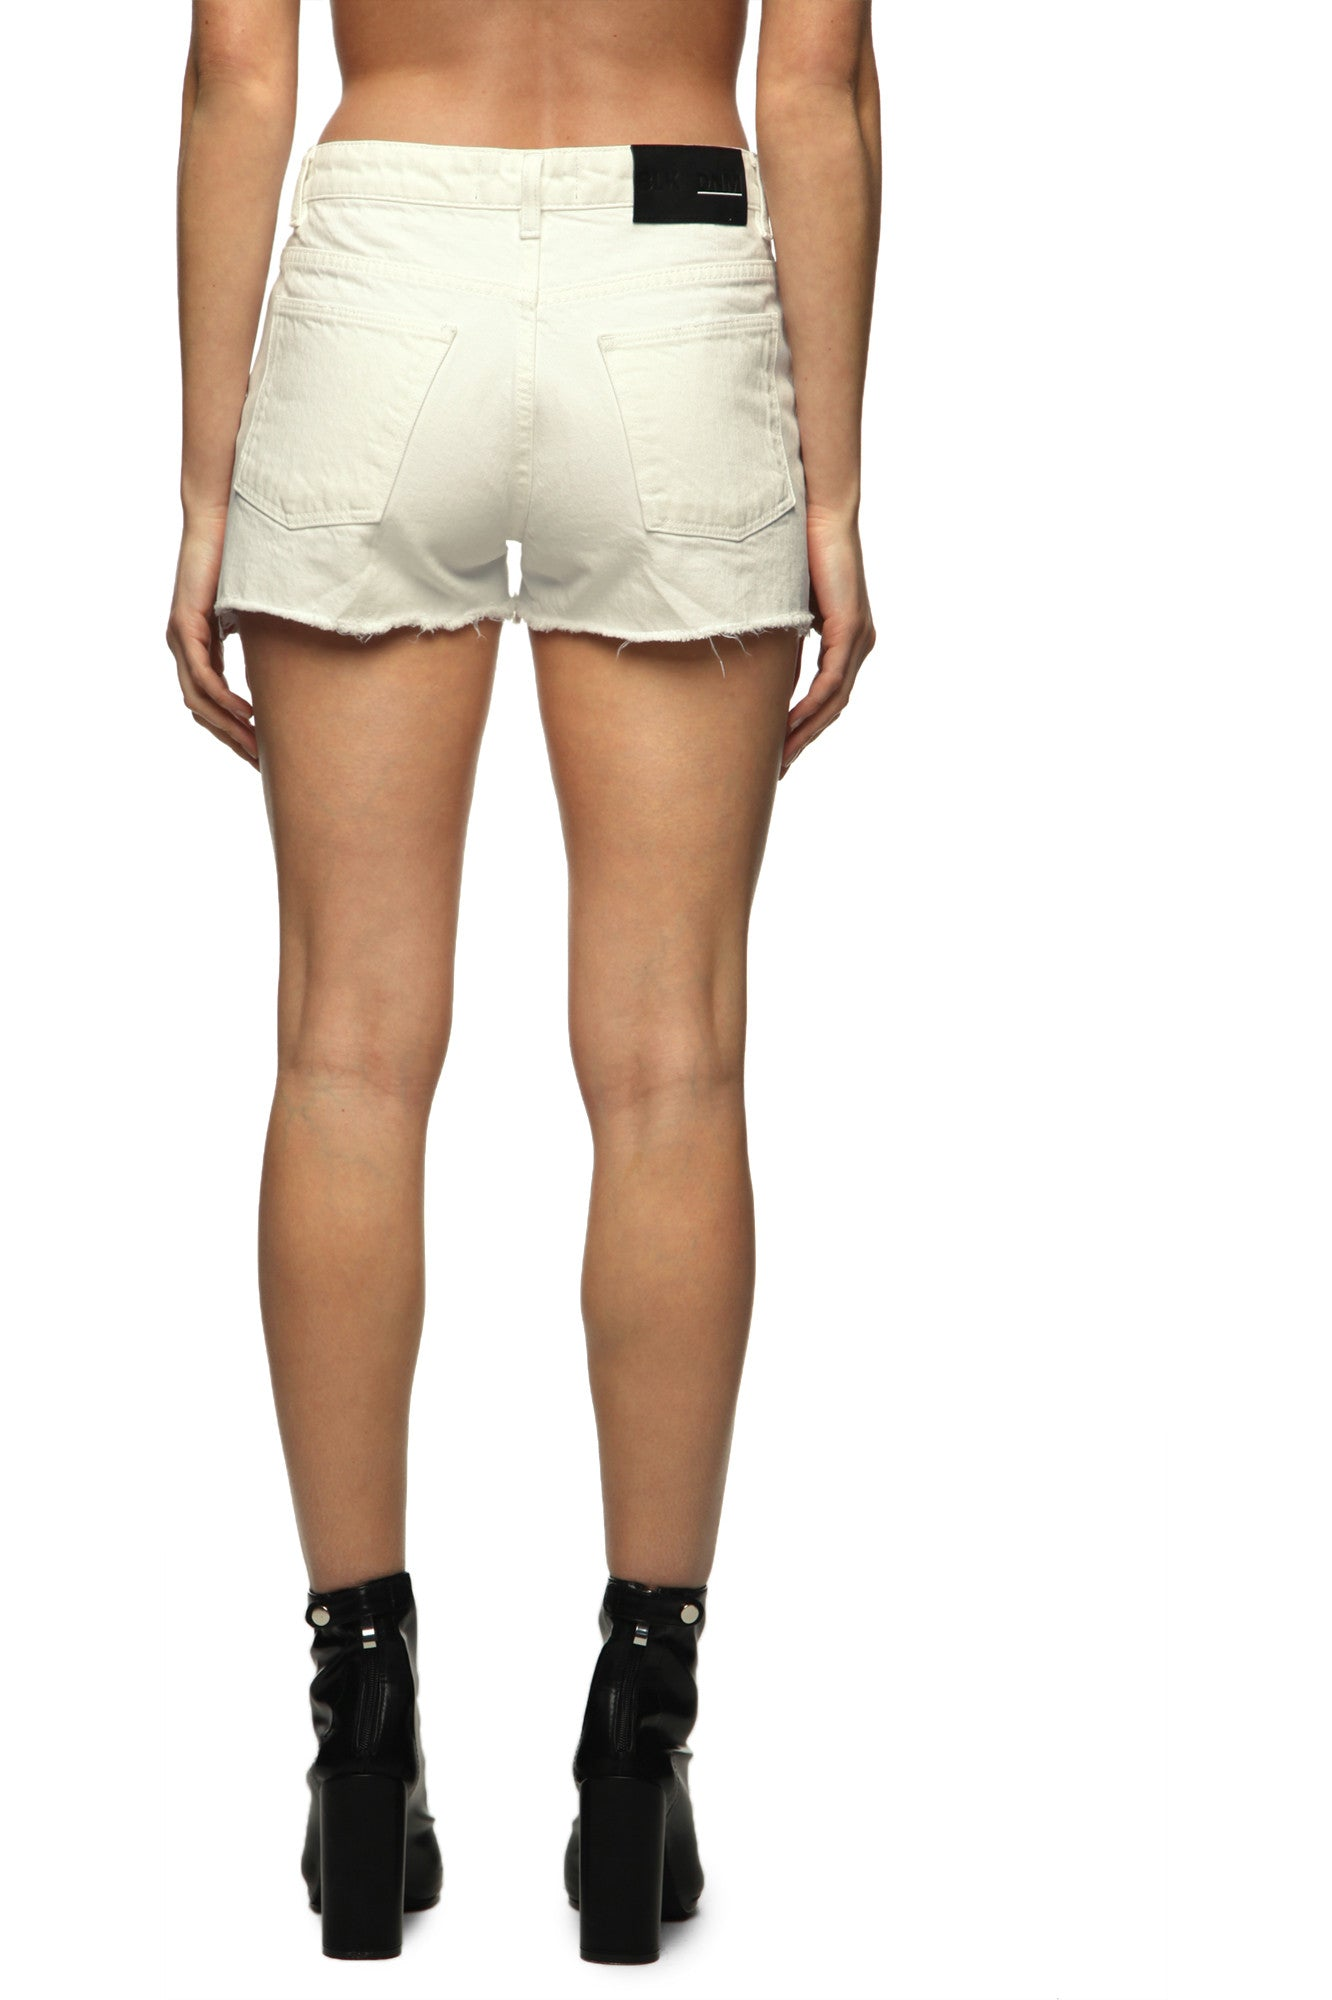 Womens Jean Shorts 16 Montague White